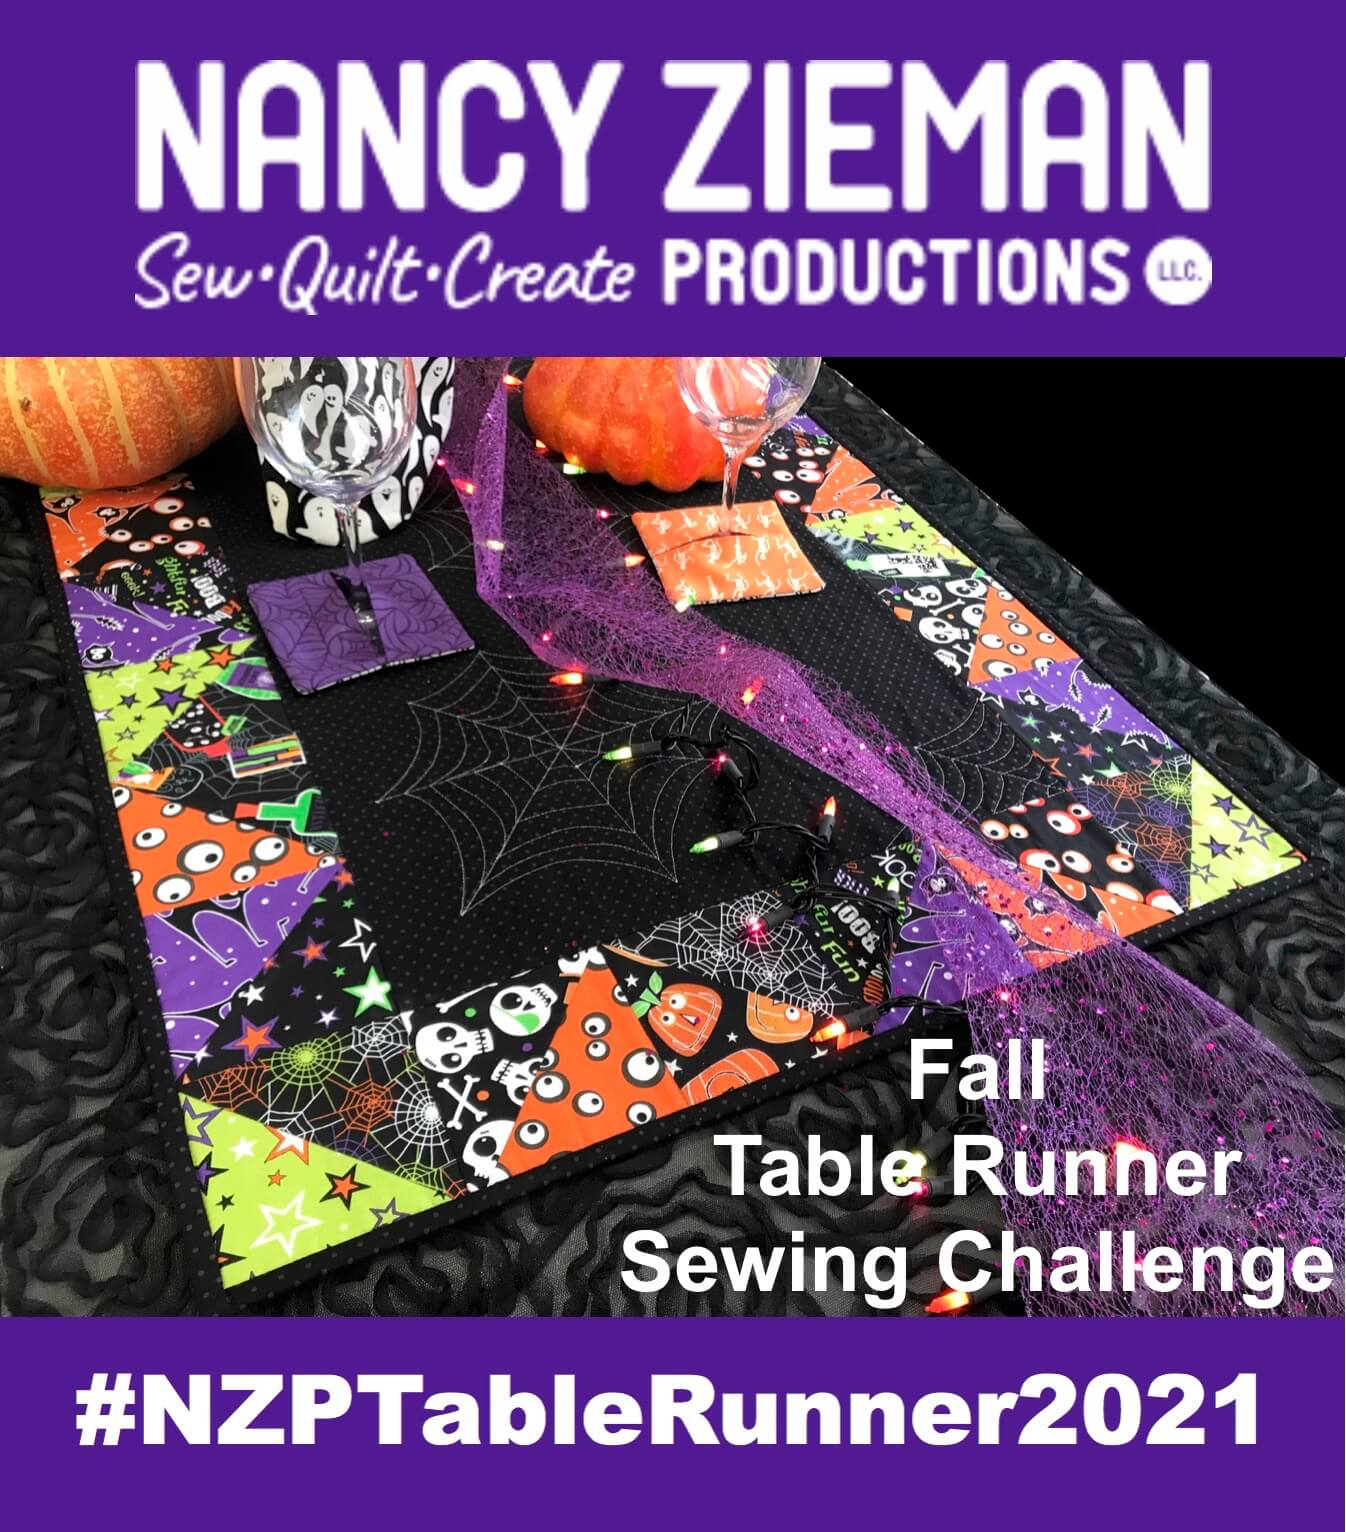 2021 Fall Table Runner Sewing Challenge